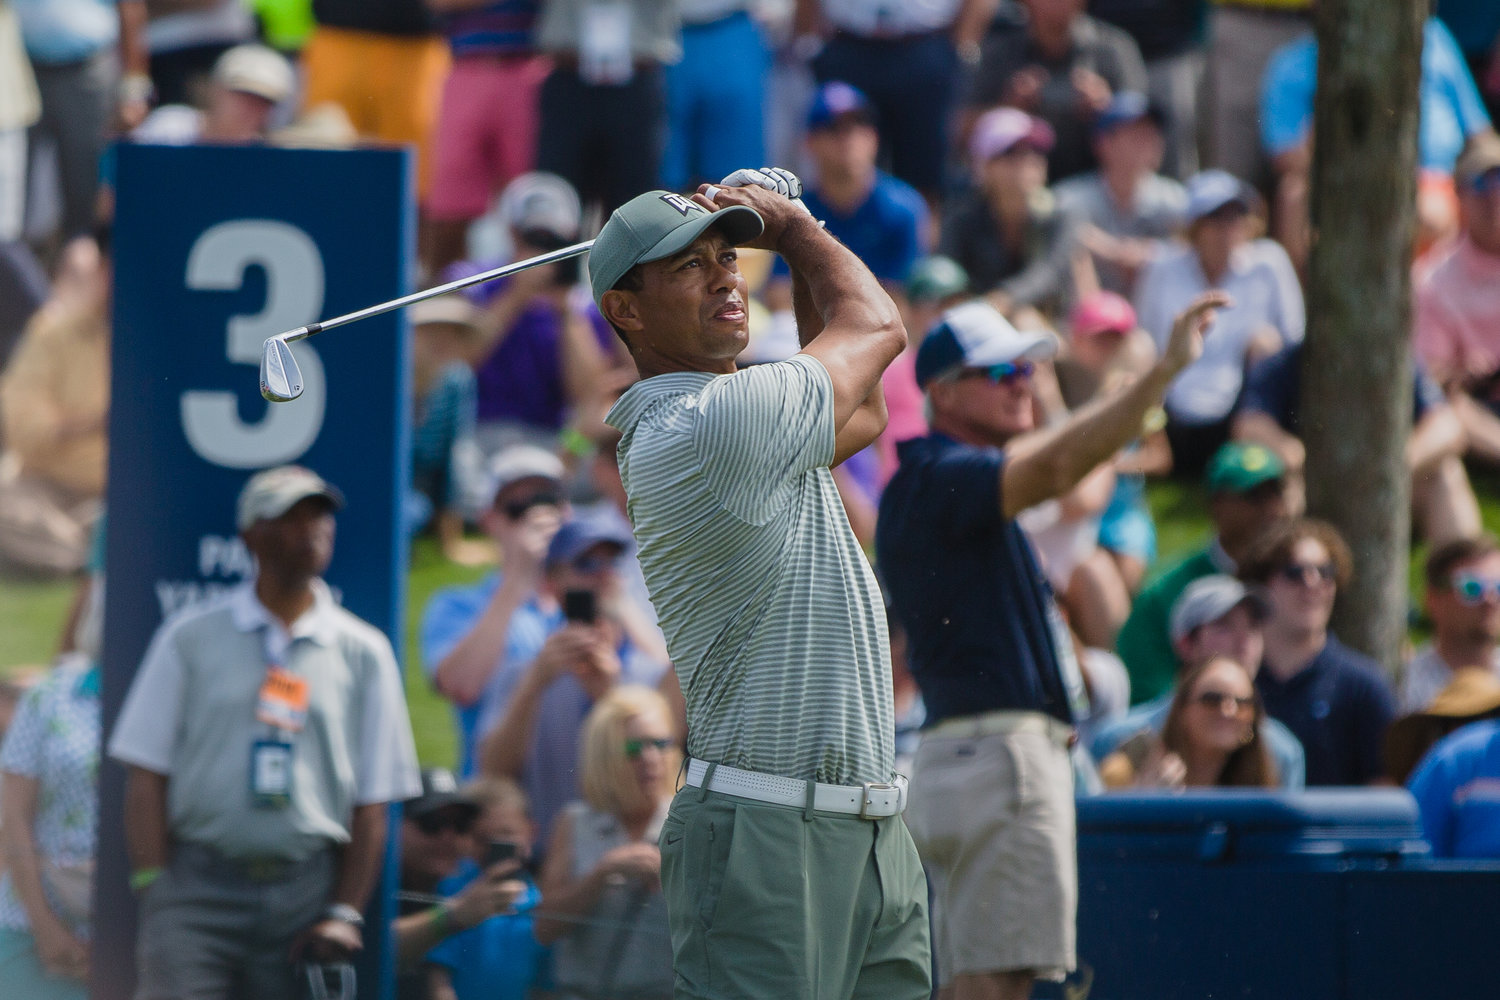 Tiger Woods hits a shot at THE PLAYERS. He's 2-under par, and five back of the lead, after the first round.